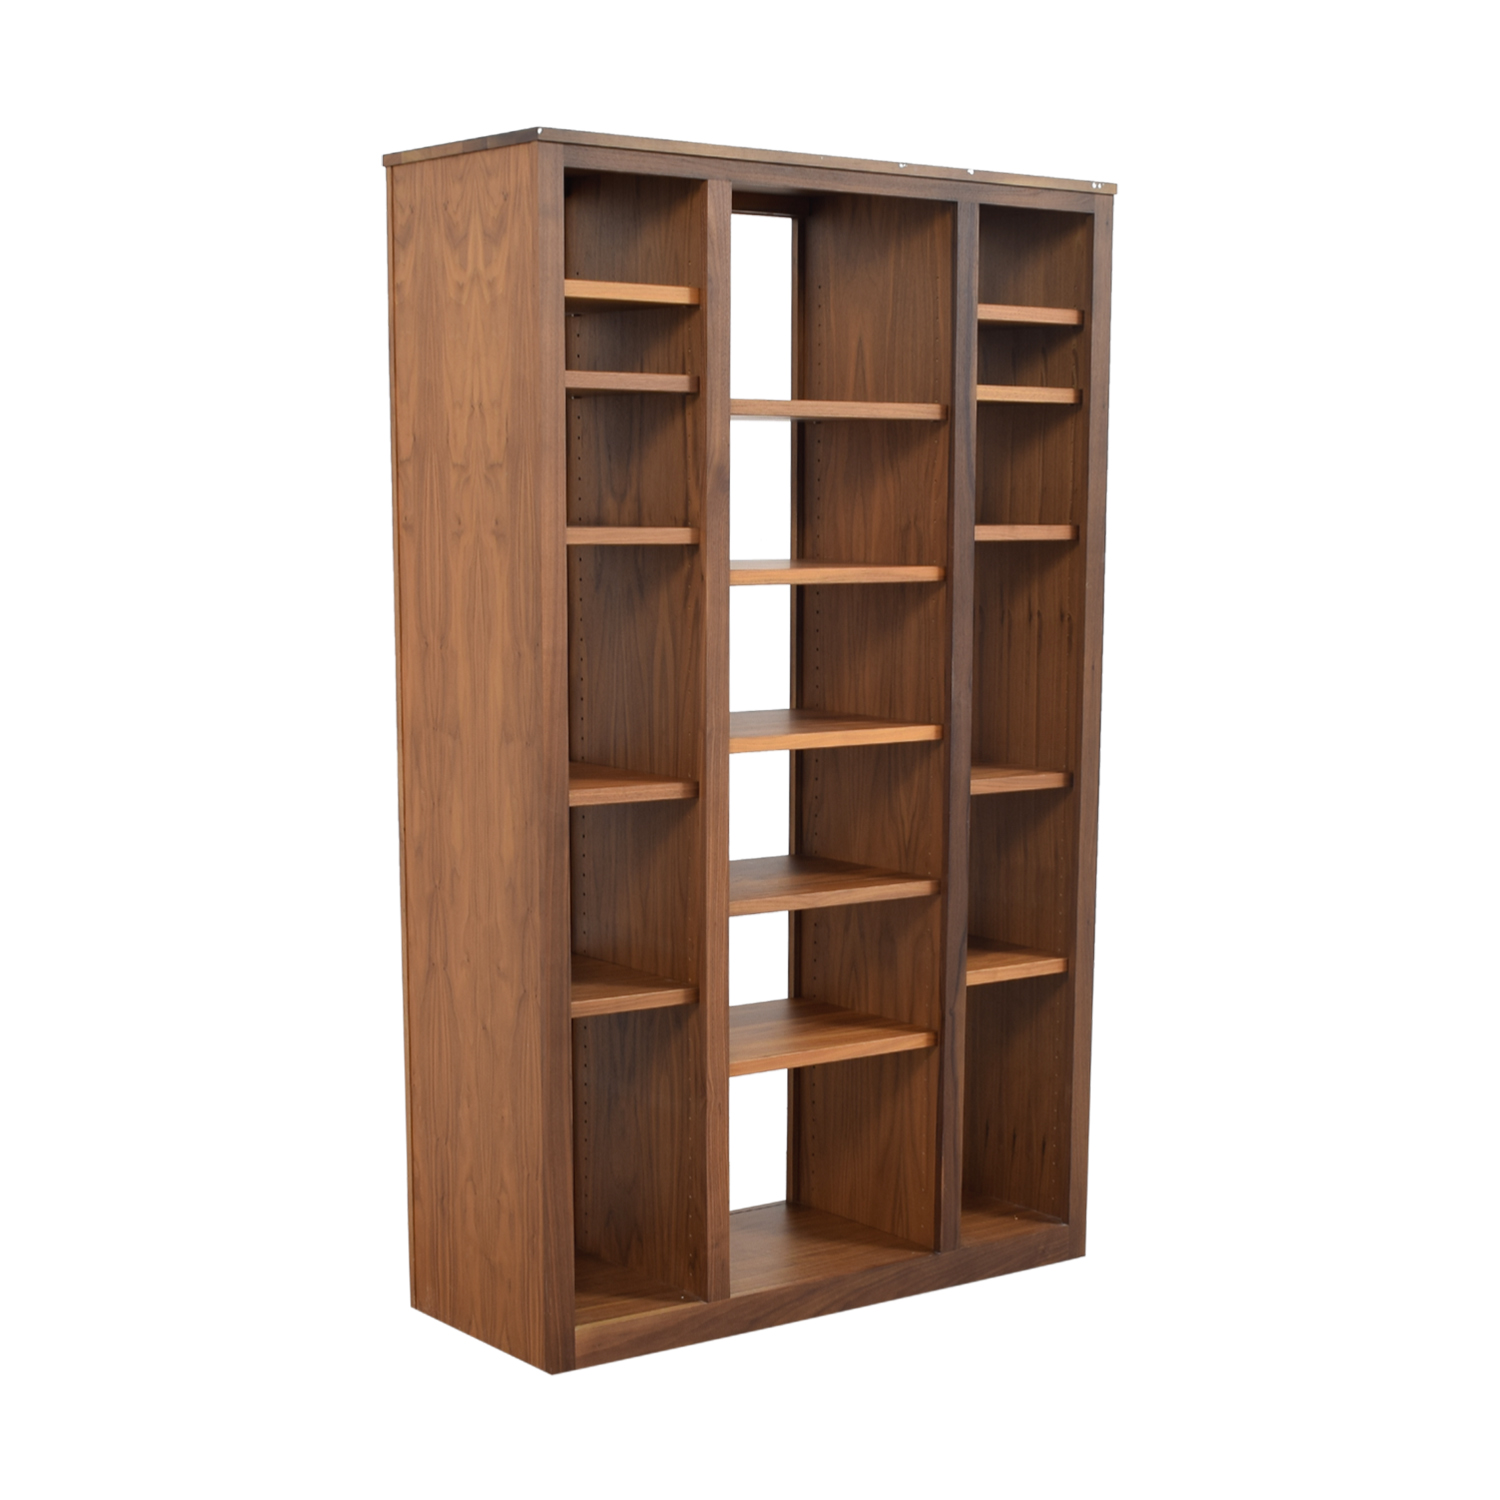 Room and Board Room and Board Woodwind Walnut Double Open-Back Bookcase Bookcases & Shelving